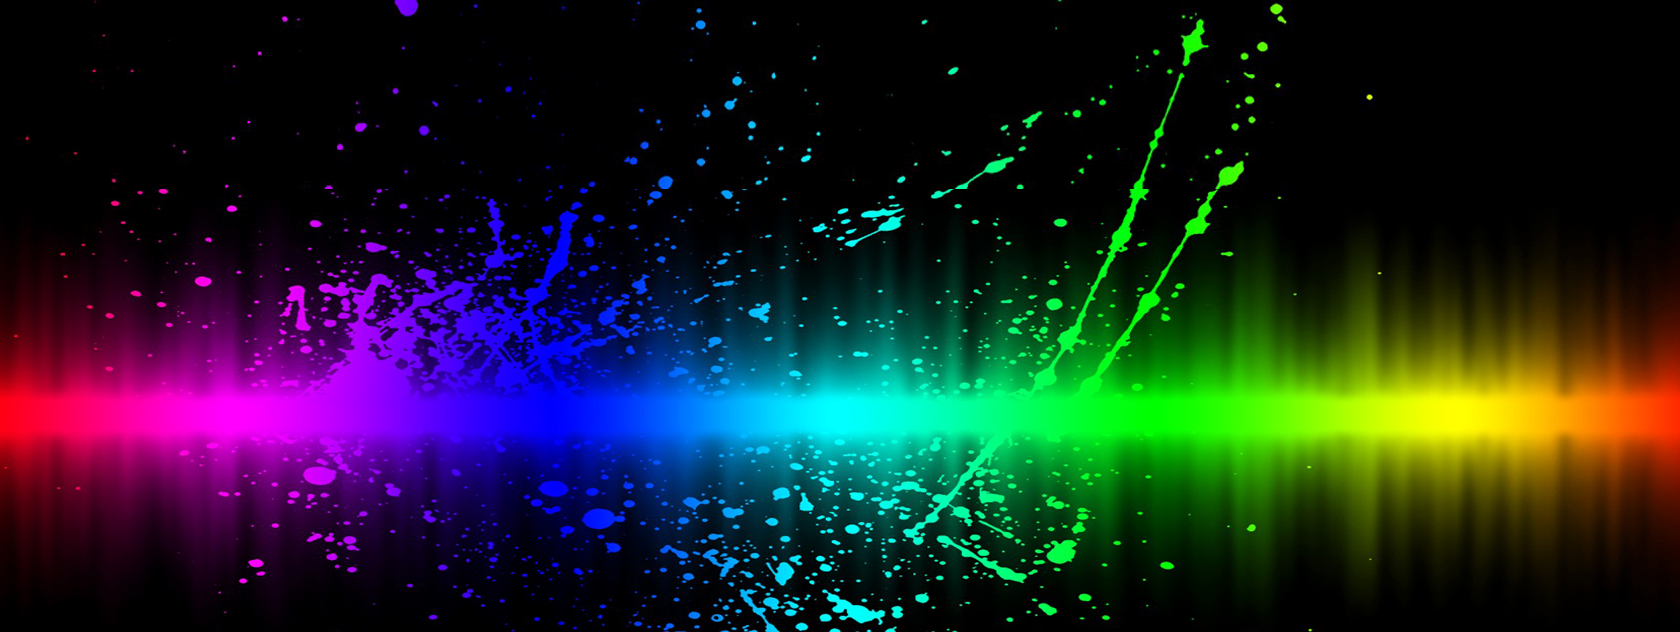 Bright Neon Backgrounds Wallpapersafari